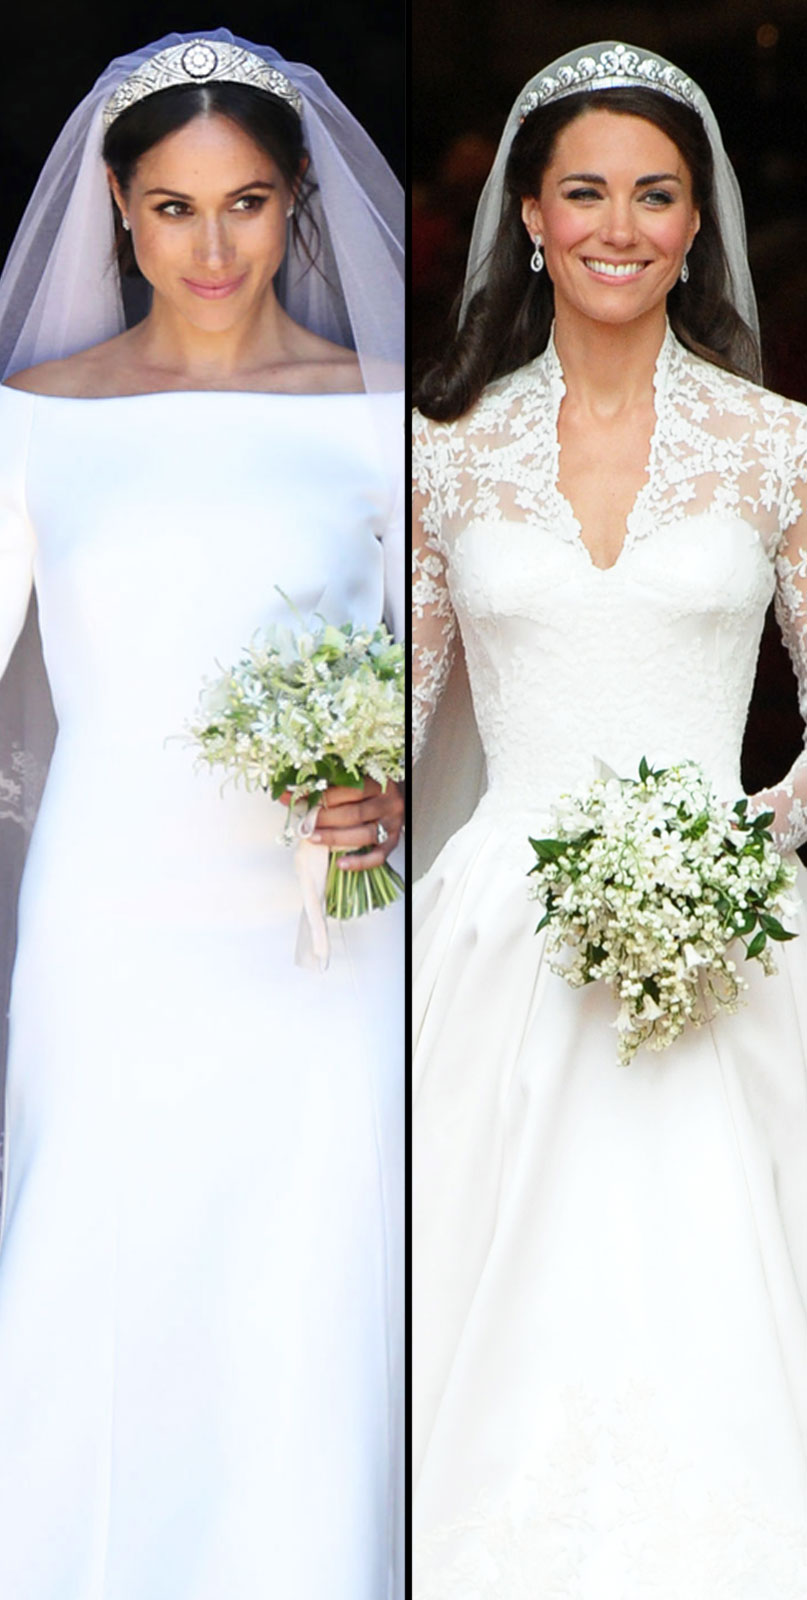 Kate Middleton And Meghan Markles Wedding Dresses Who Had The Best